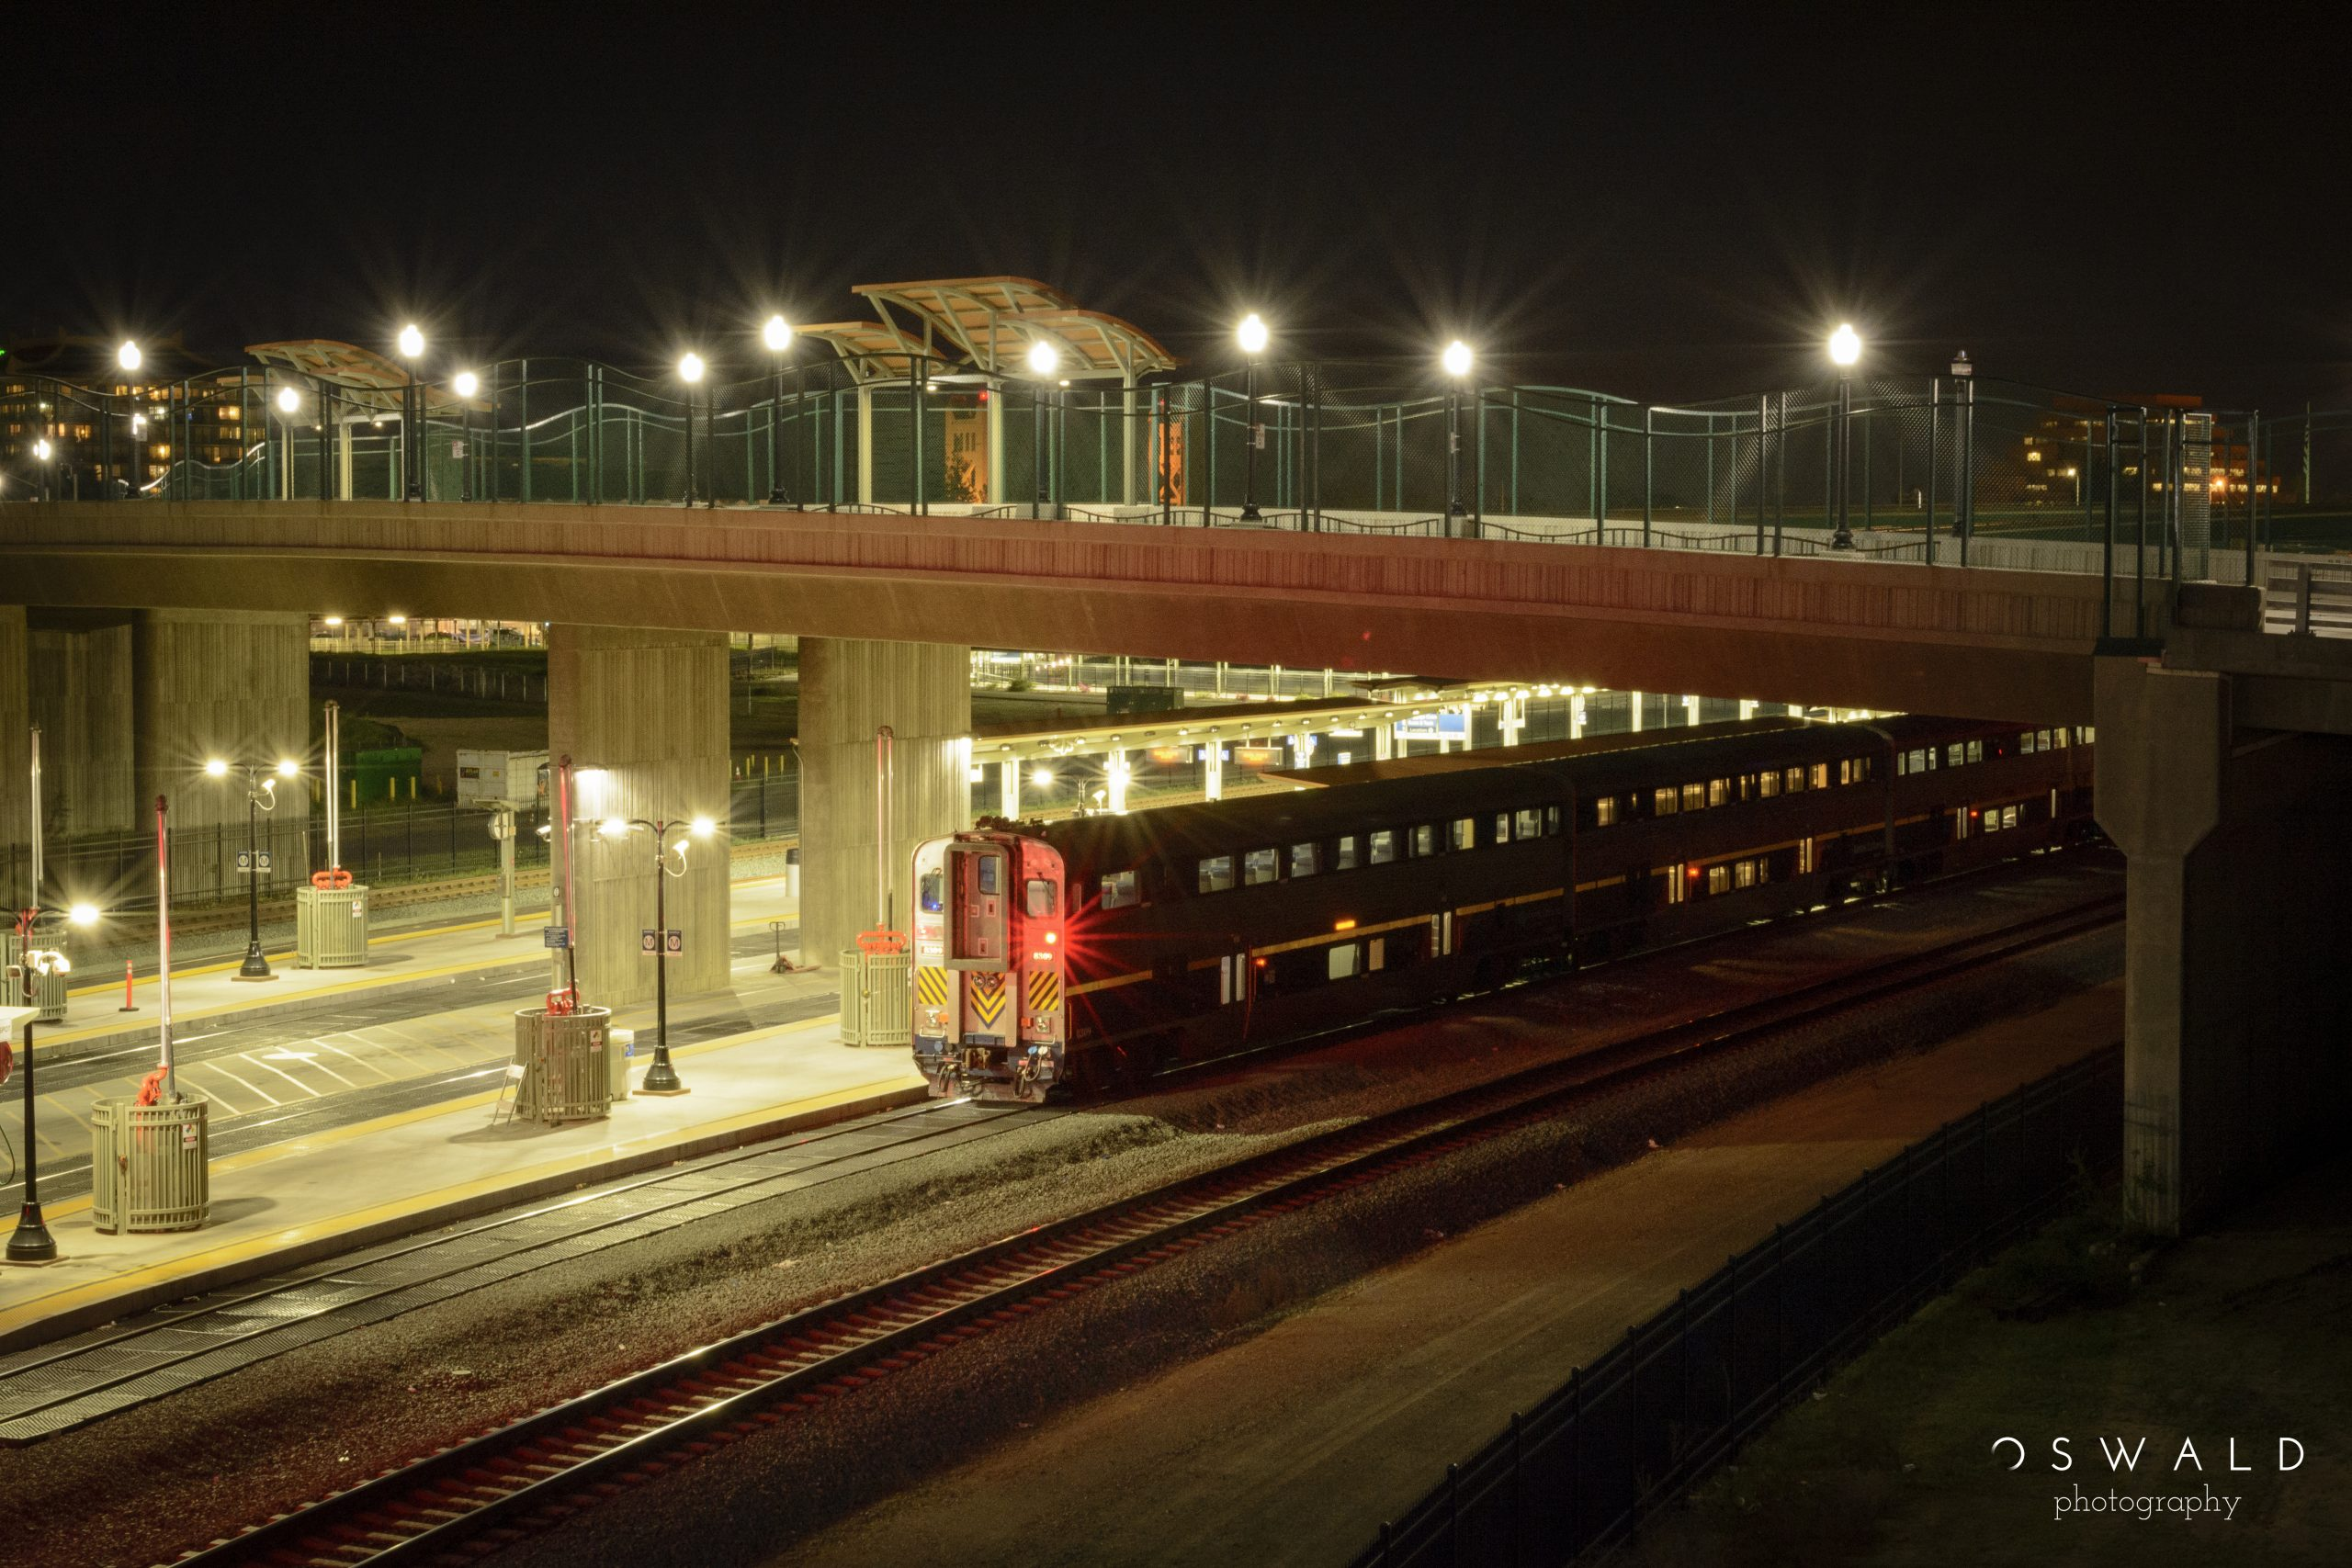 Photograph of a n train that has reached the platform for night, emptied of all of its passengers.